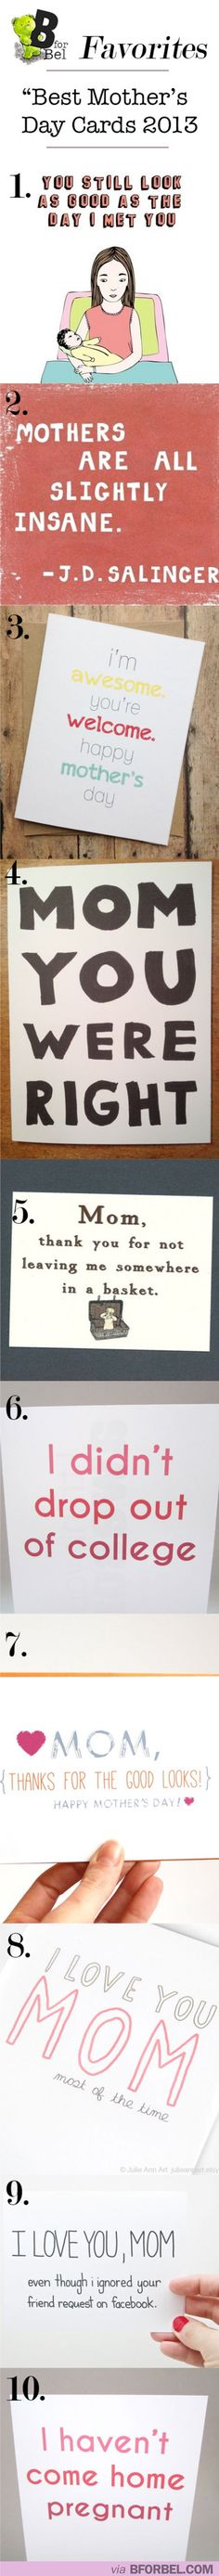 Best Mother's Day Cards.i hope one day i can get a card like this* fingers crossed*